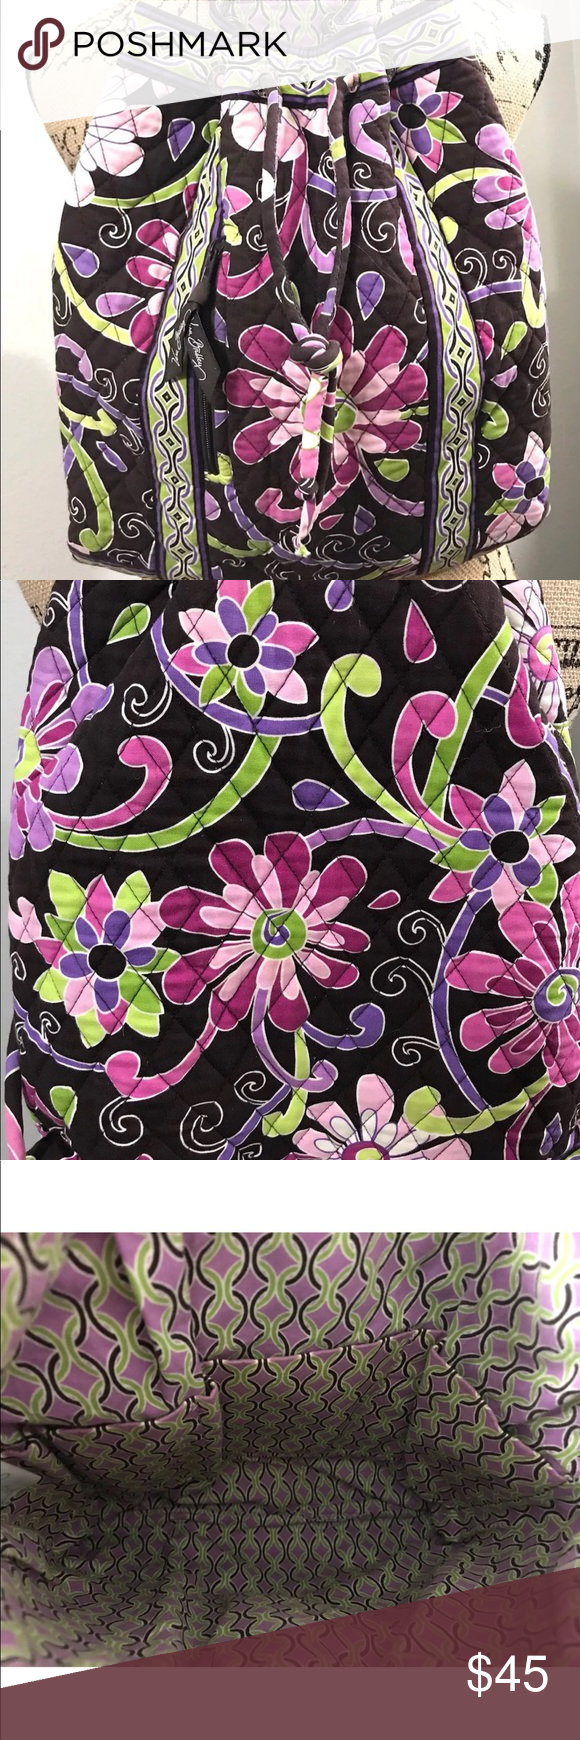 """Clean on the inside 14""""Length 12"""" Height Thanks for looking! Peace. Vera  Bradley Bags Backpacks. Vera Bradley purple punch ... ce84e2ed8b"""